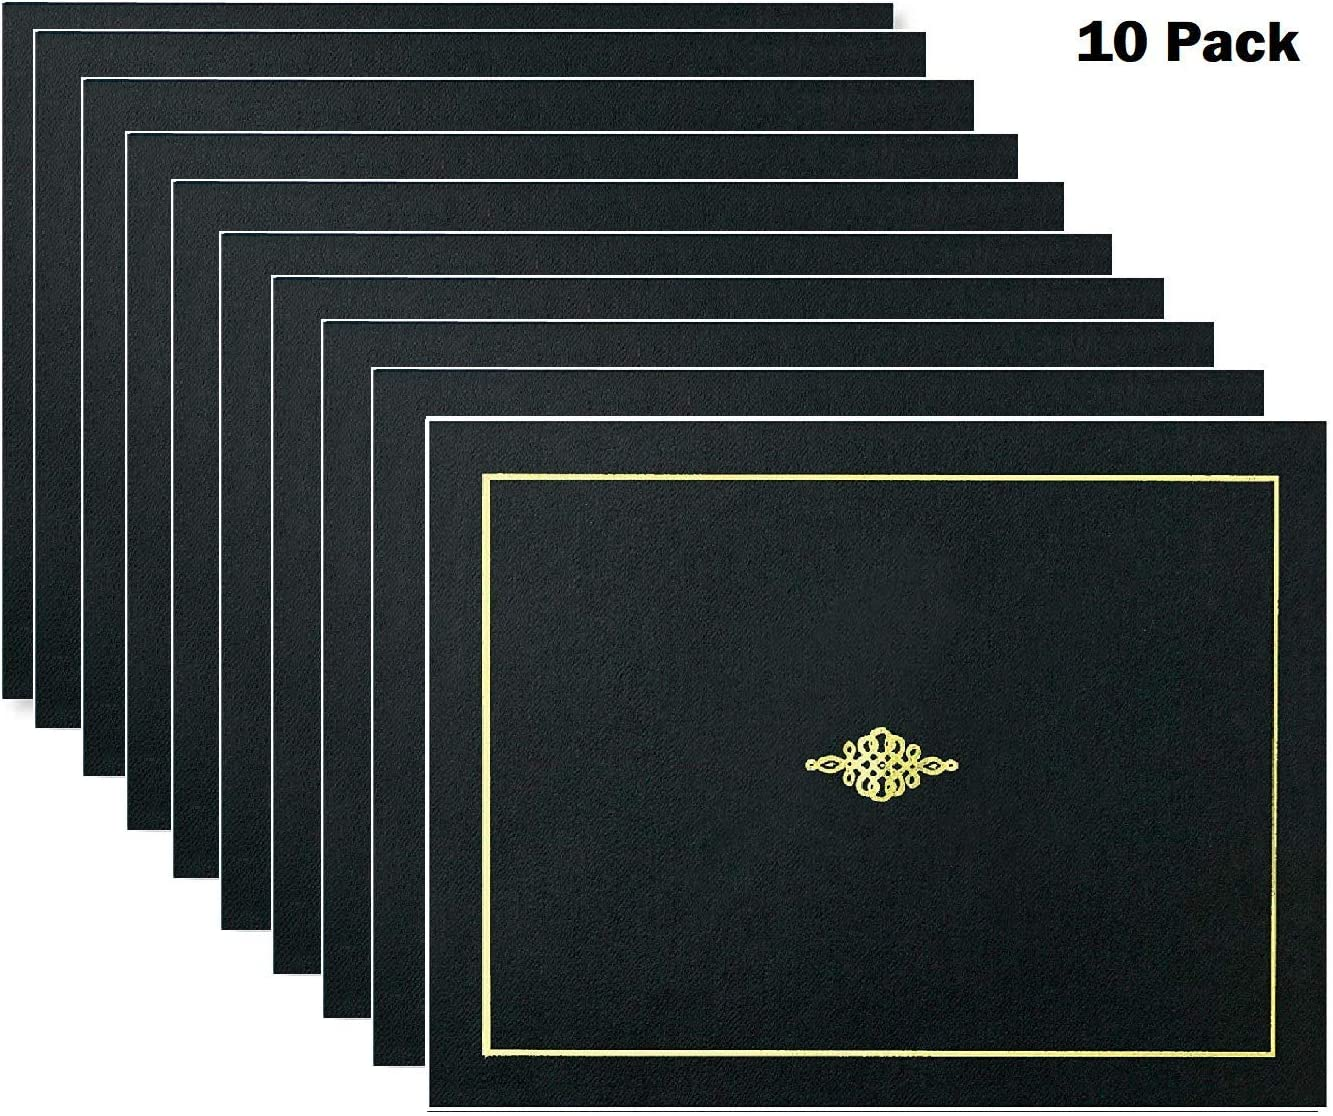 Black Certificate Jacket with Silver Foil Crest 10 Count